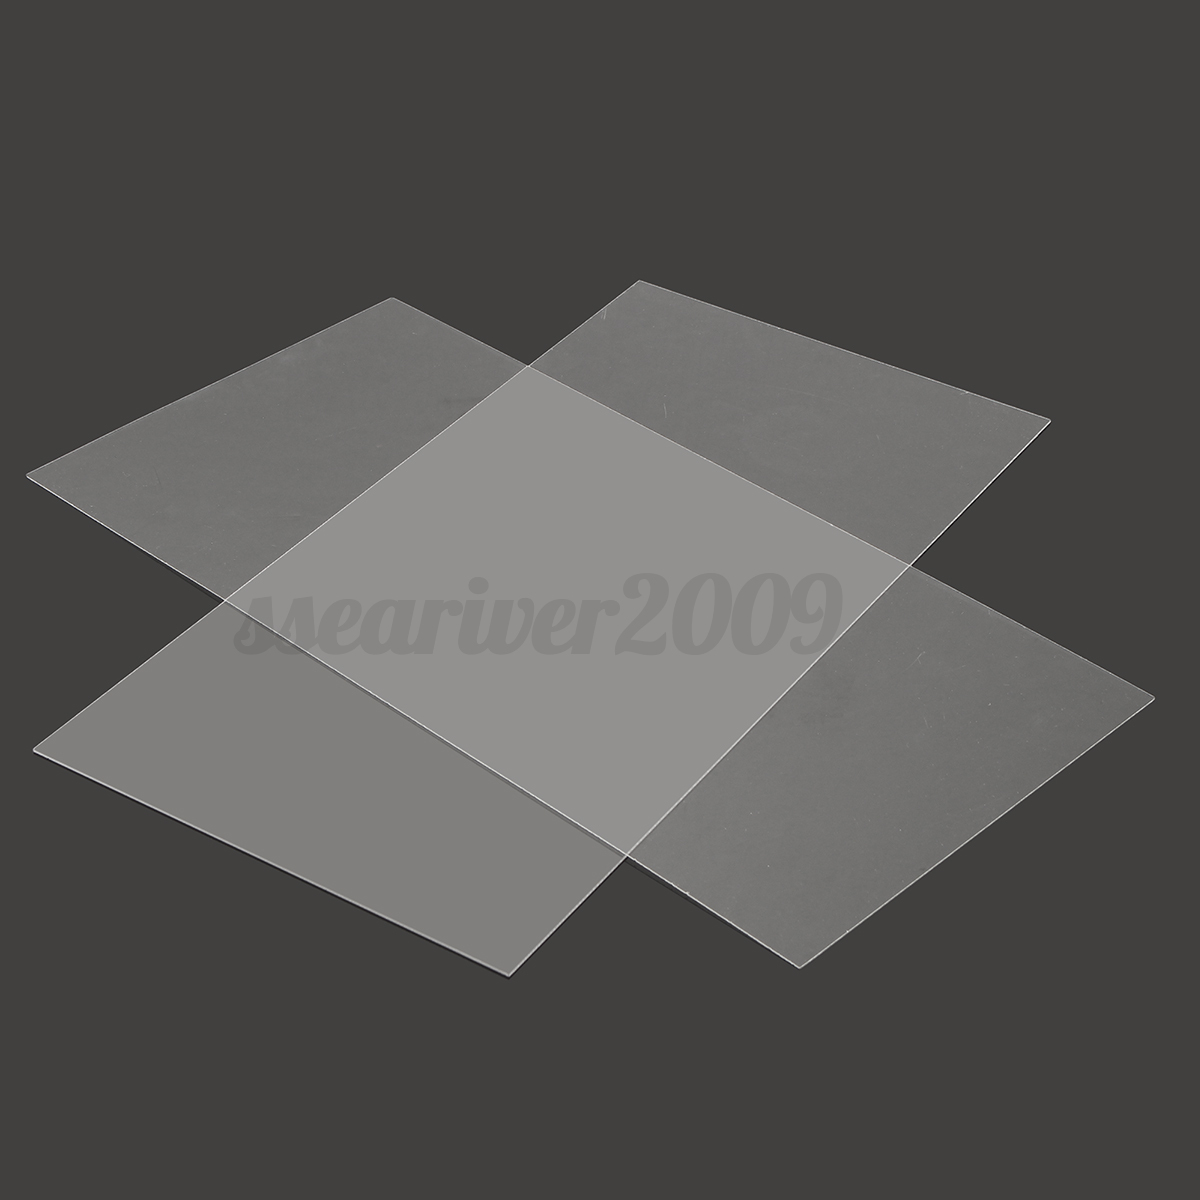 1 or 2mm transparent plastic panel clear acrylic perspex sheet cut to size diy ebay. Black Bedroom Furniture Sets. Home Design Ideas